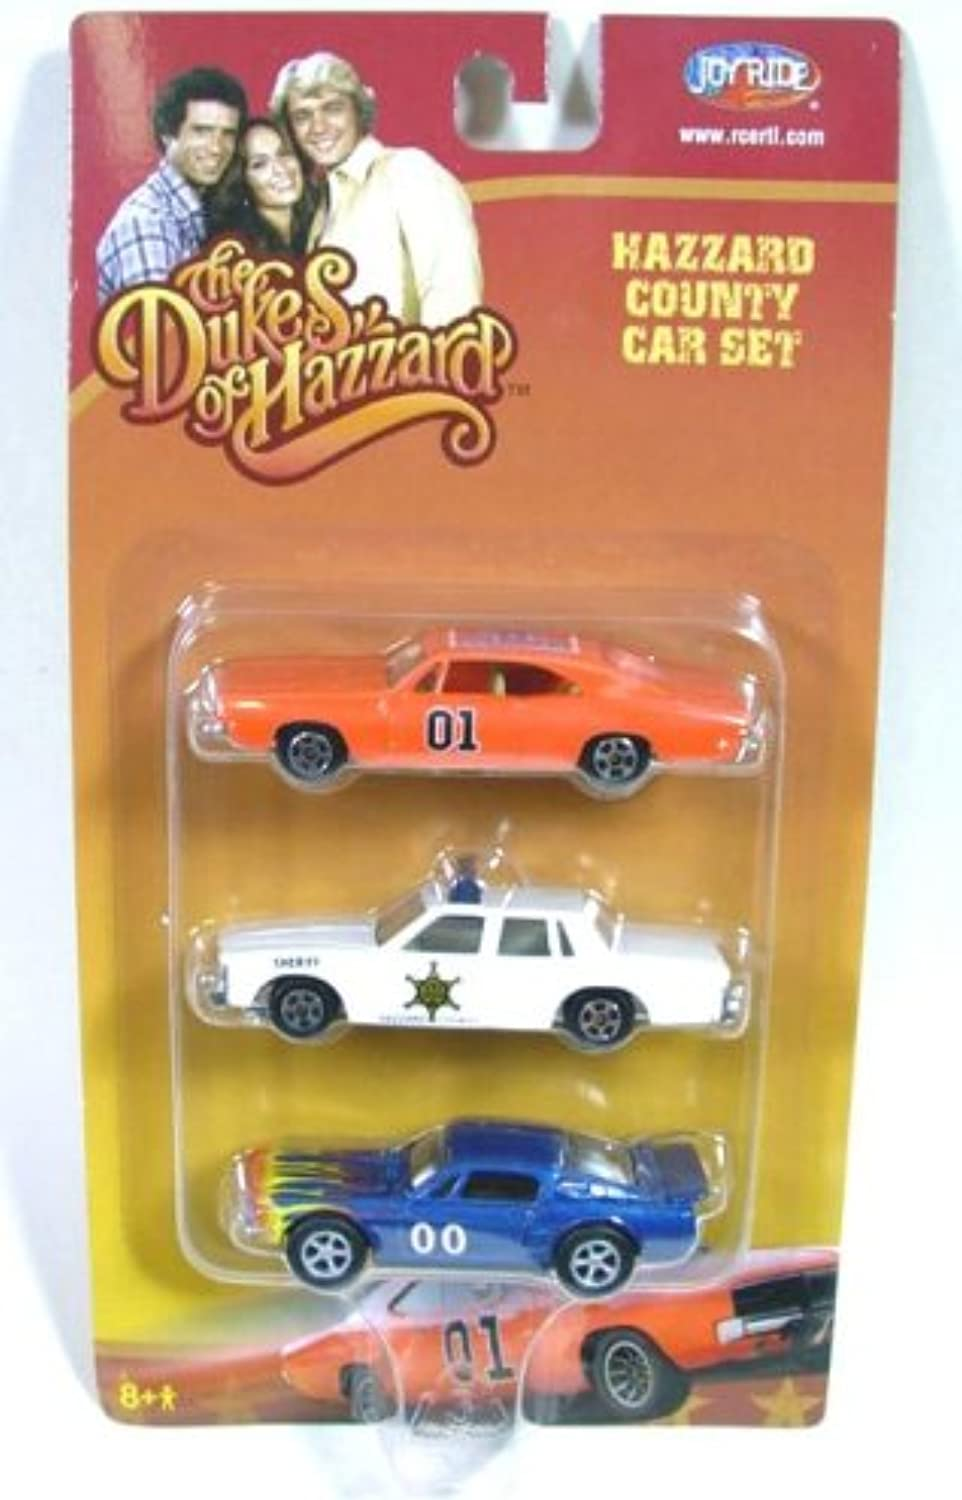 Joyride Entertainment Dukes of Hazzard Motorcars 1 64 Scale (3 Pack)